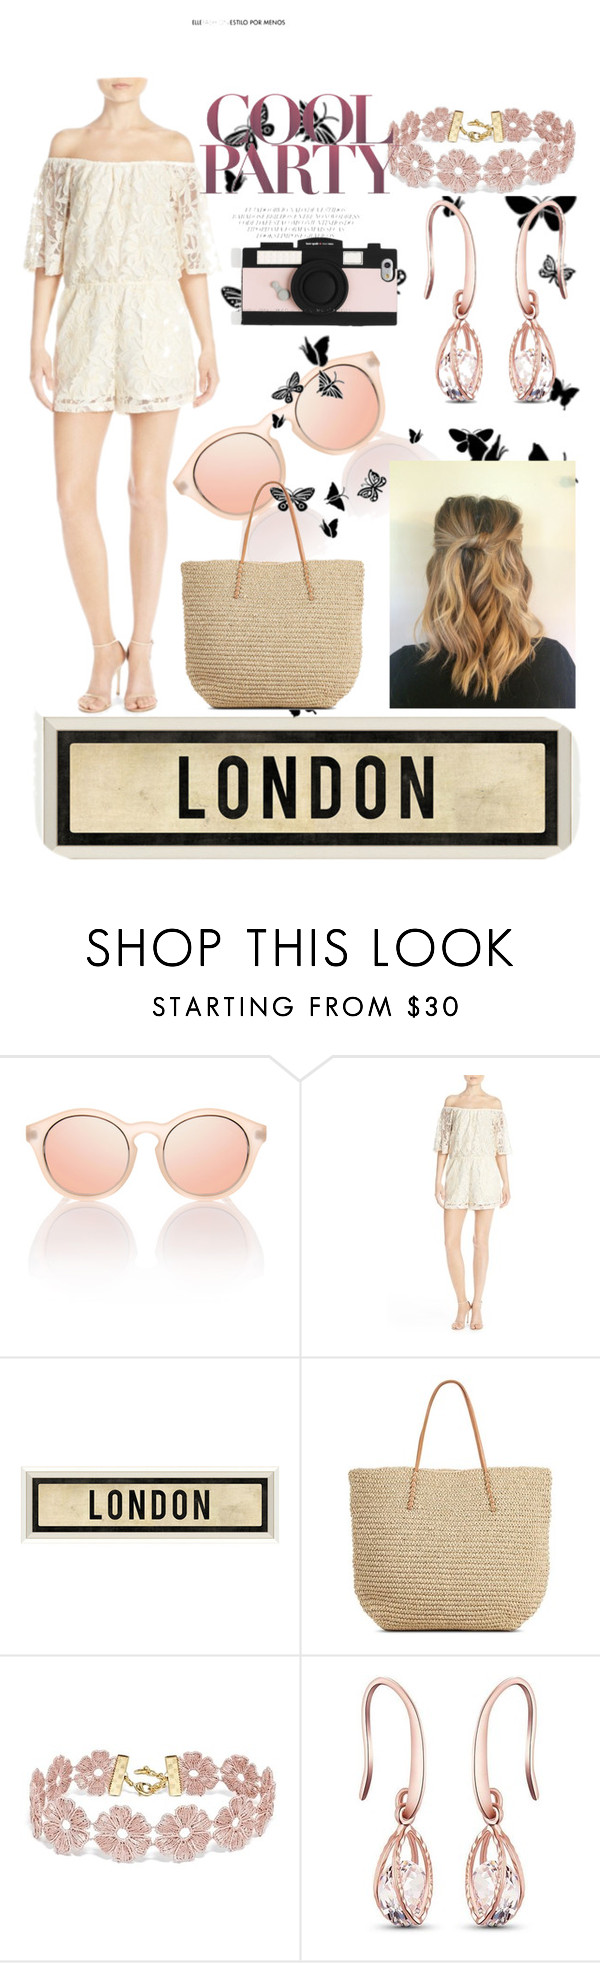 """London party"" by catherineburrows ❤ liked on Polyvore featuring BB Dakota, Dot & Bo, Target, BaubleBar and Kate Spade"